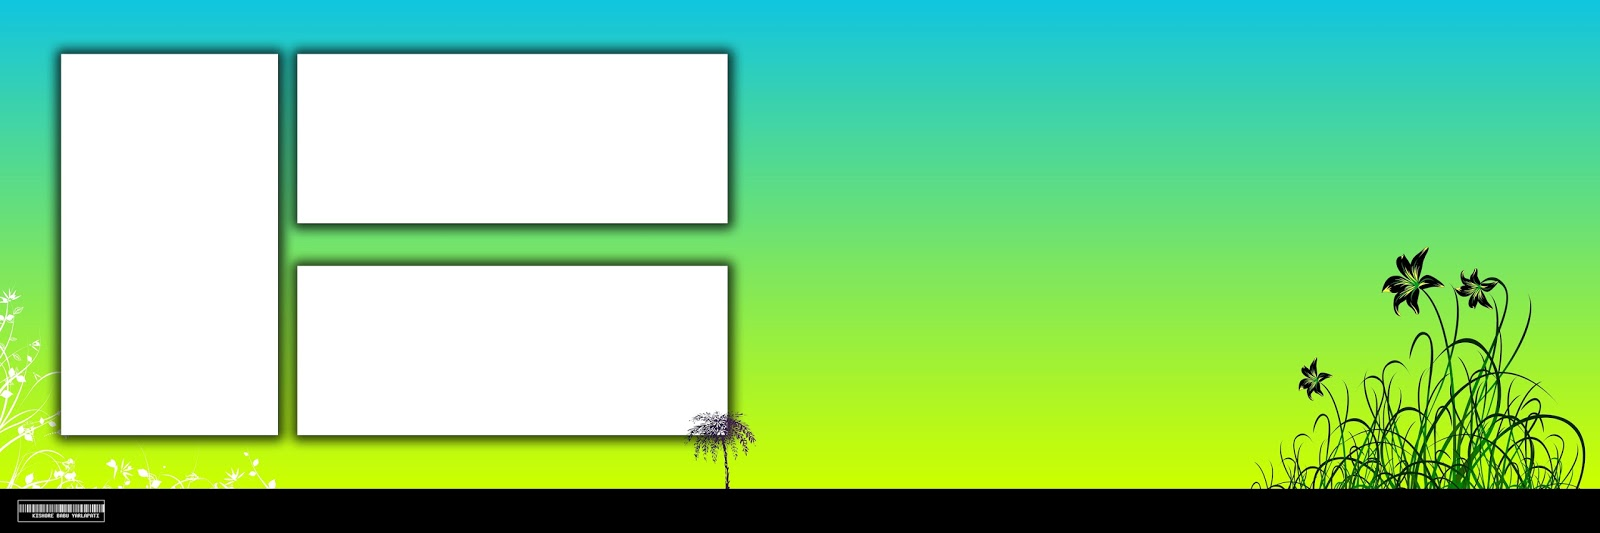 All Free Vector's Special 12X36 Backgrounds